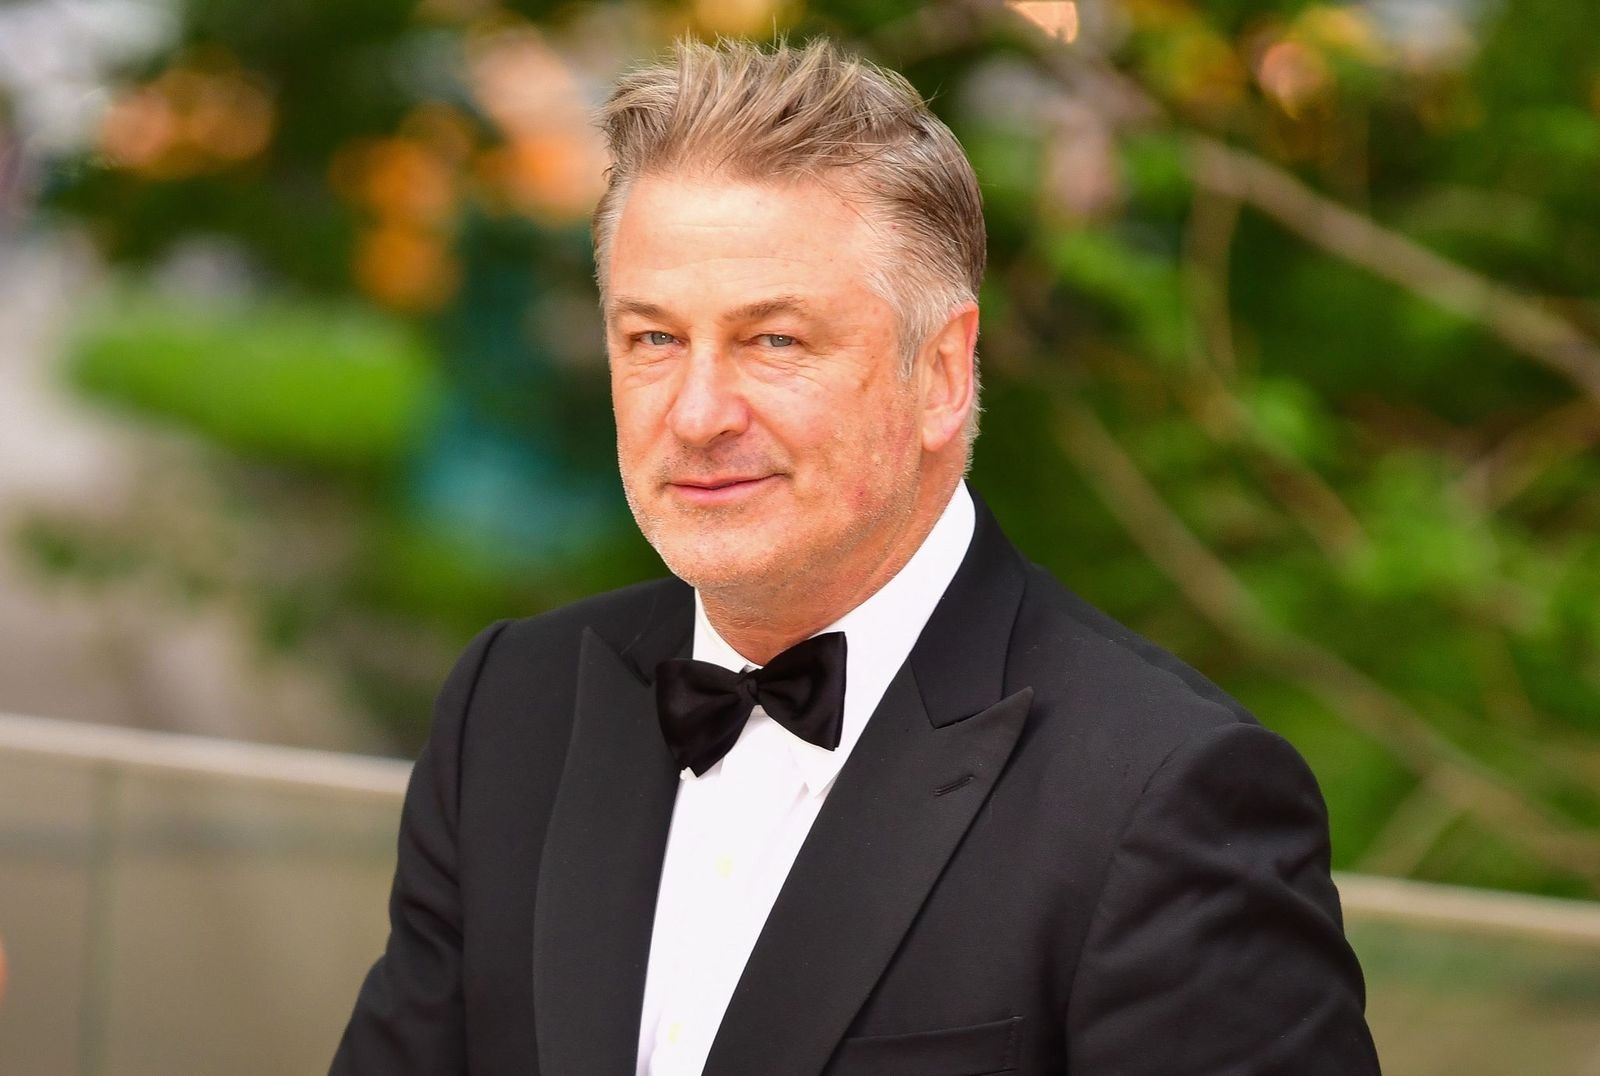 Alec Baldwin at the American Ballet Theatre Spring Gala at The Metropolitan Opera House on May 20, 2019, in New York City | Photo: James Devaney/GC Images/Getty Images